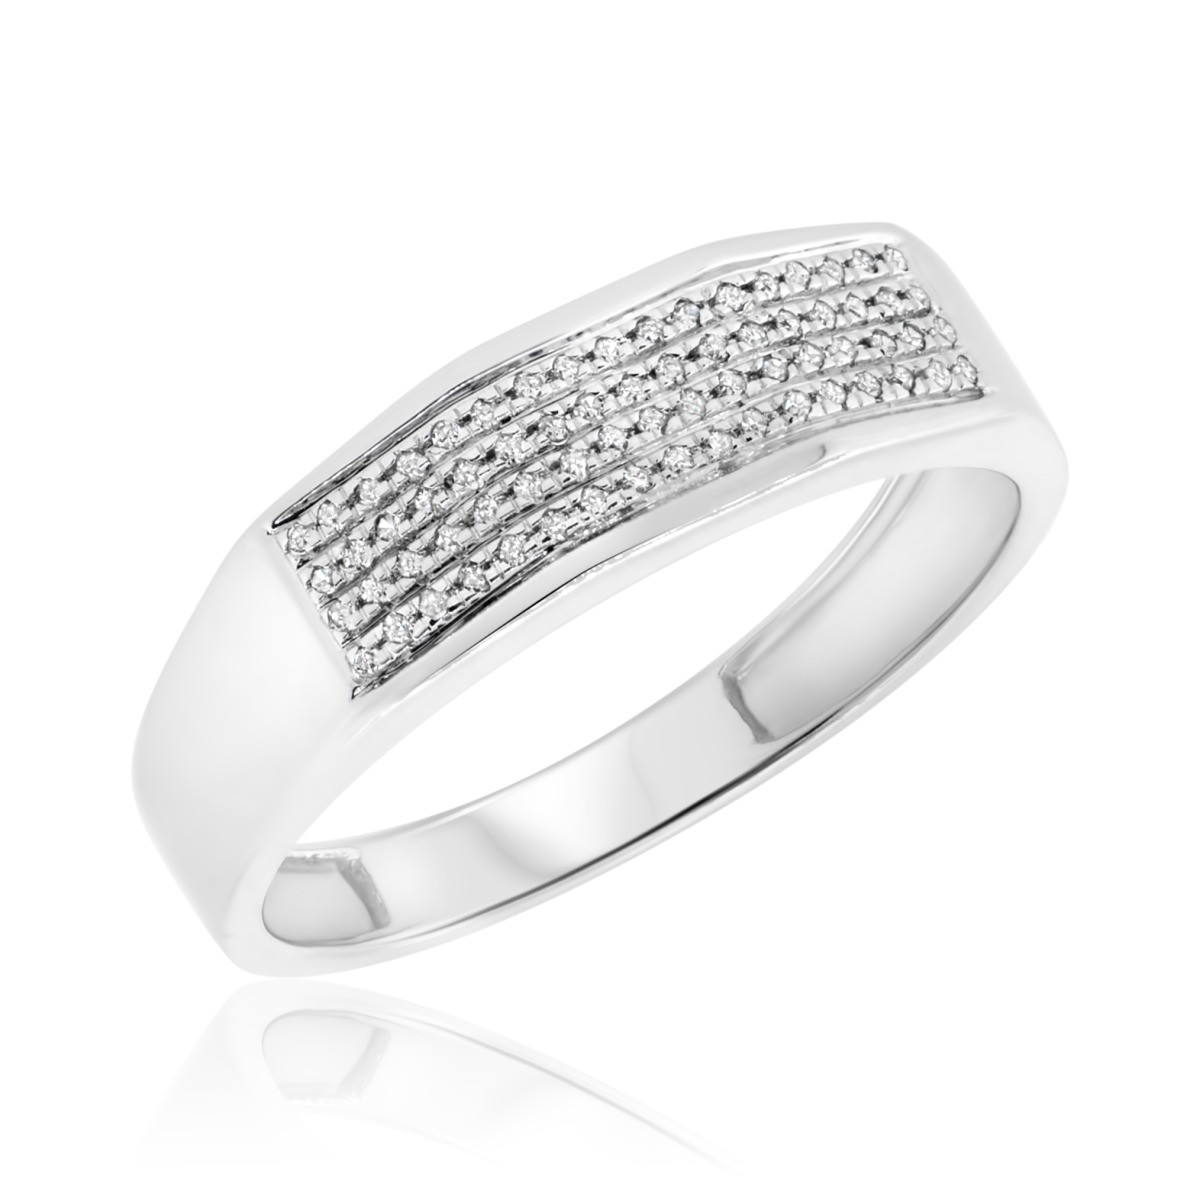 1/7 CT. T.W. Diamond Mens Wedding Band  10K White Gold